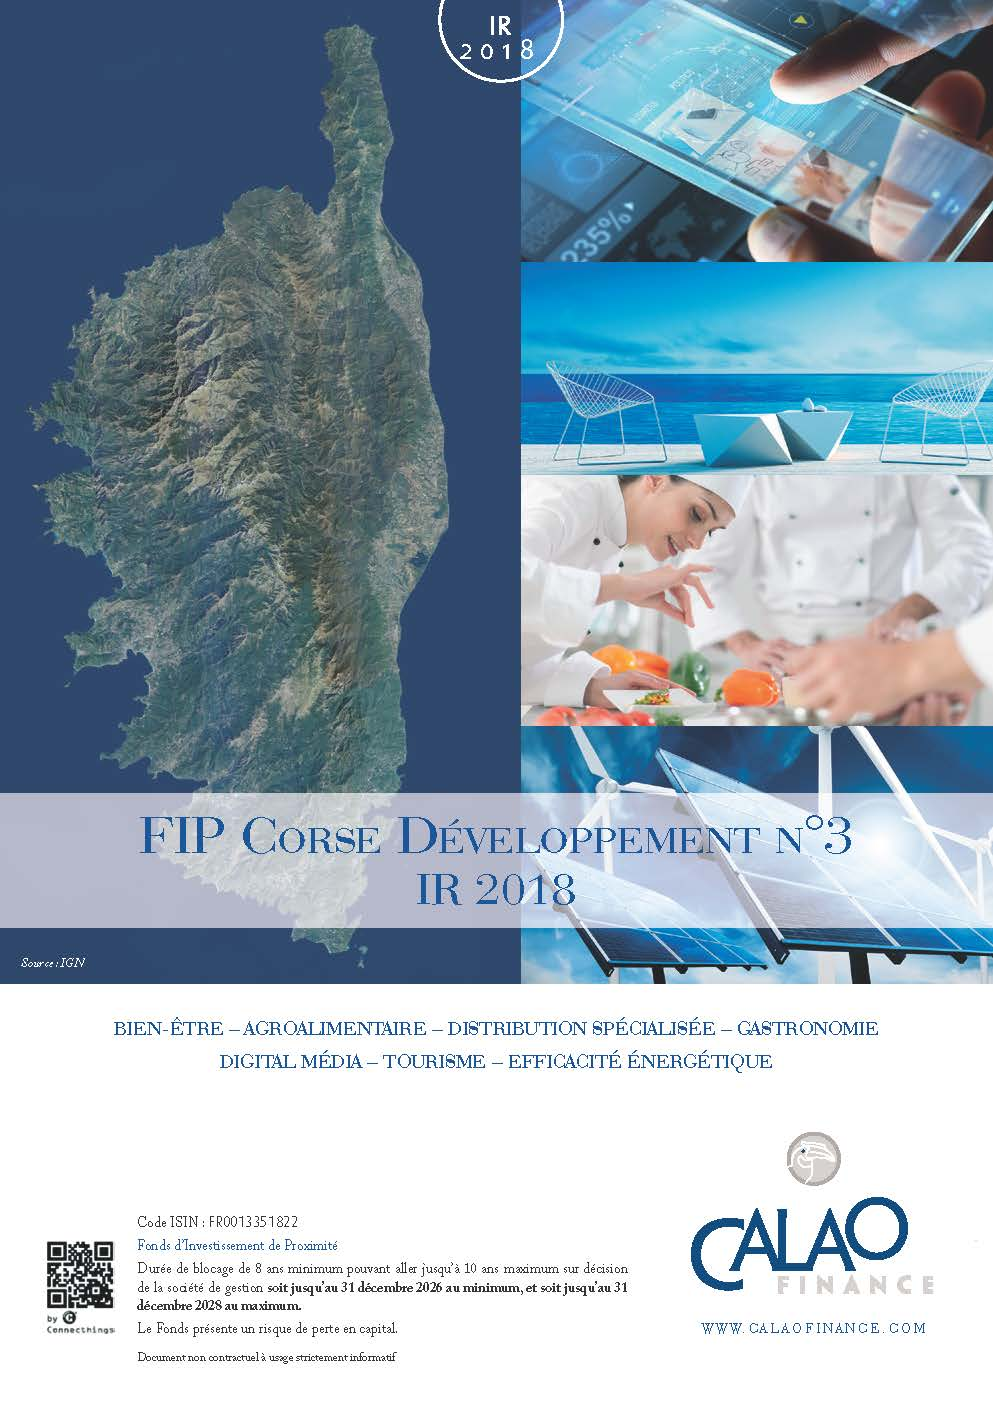 FIP CORSE DEVELOPPEMENT N°3